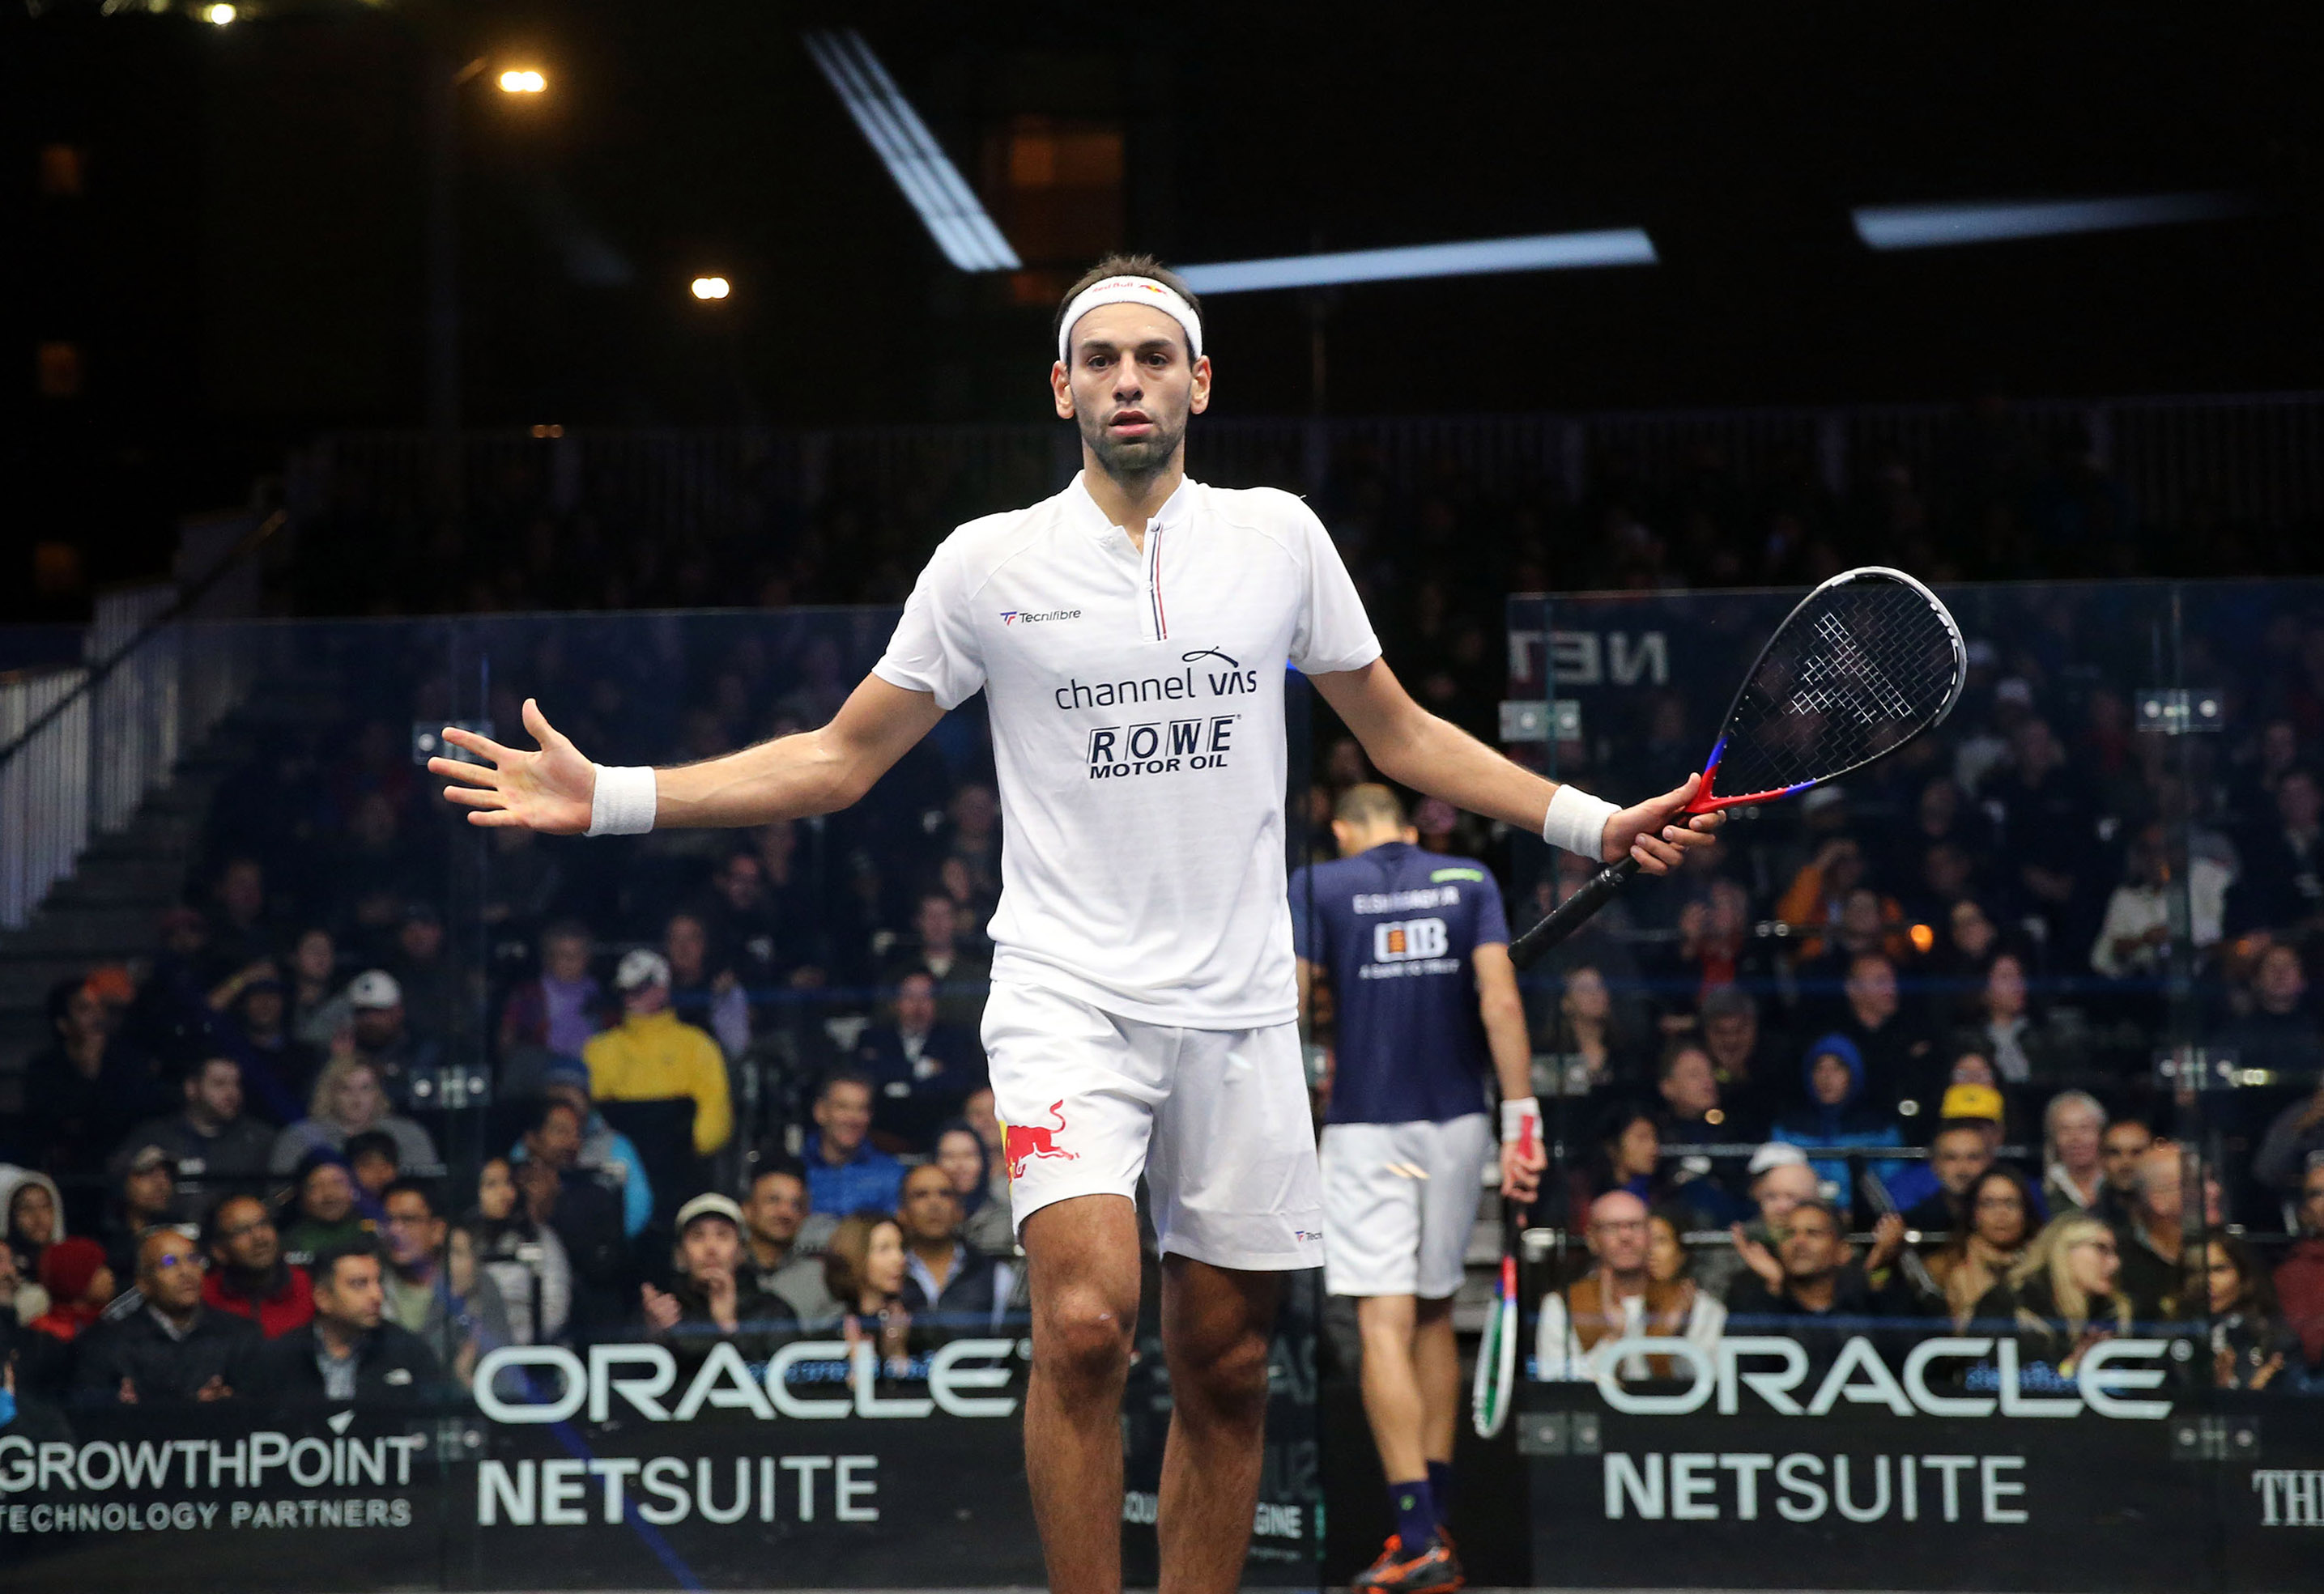 2019 Oracle NetSuite Open Set for All-Egyptian Finals